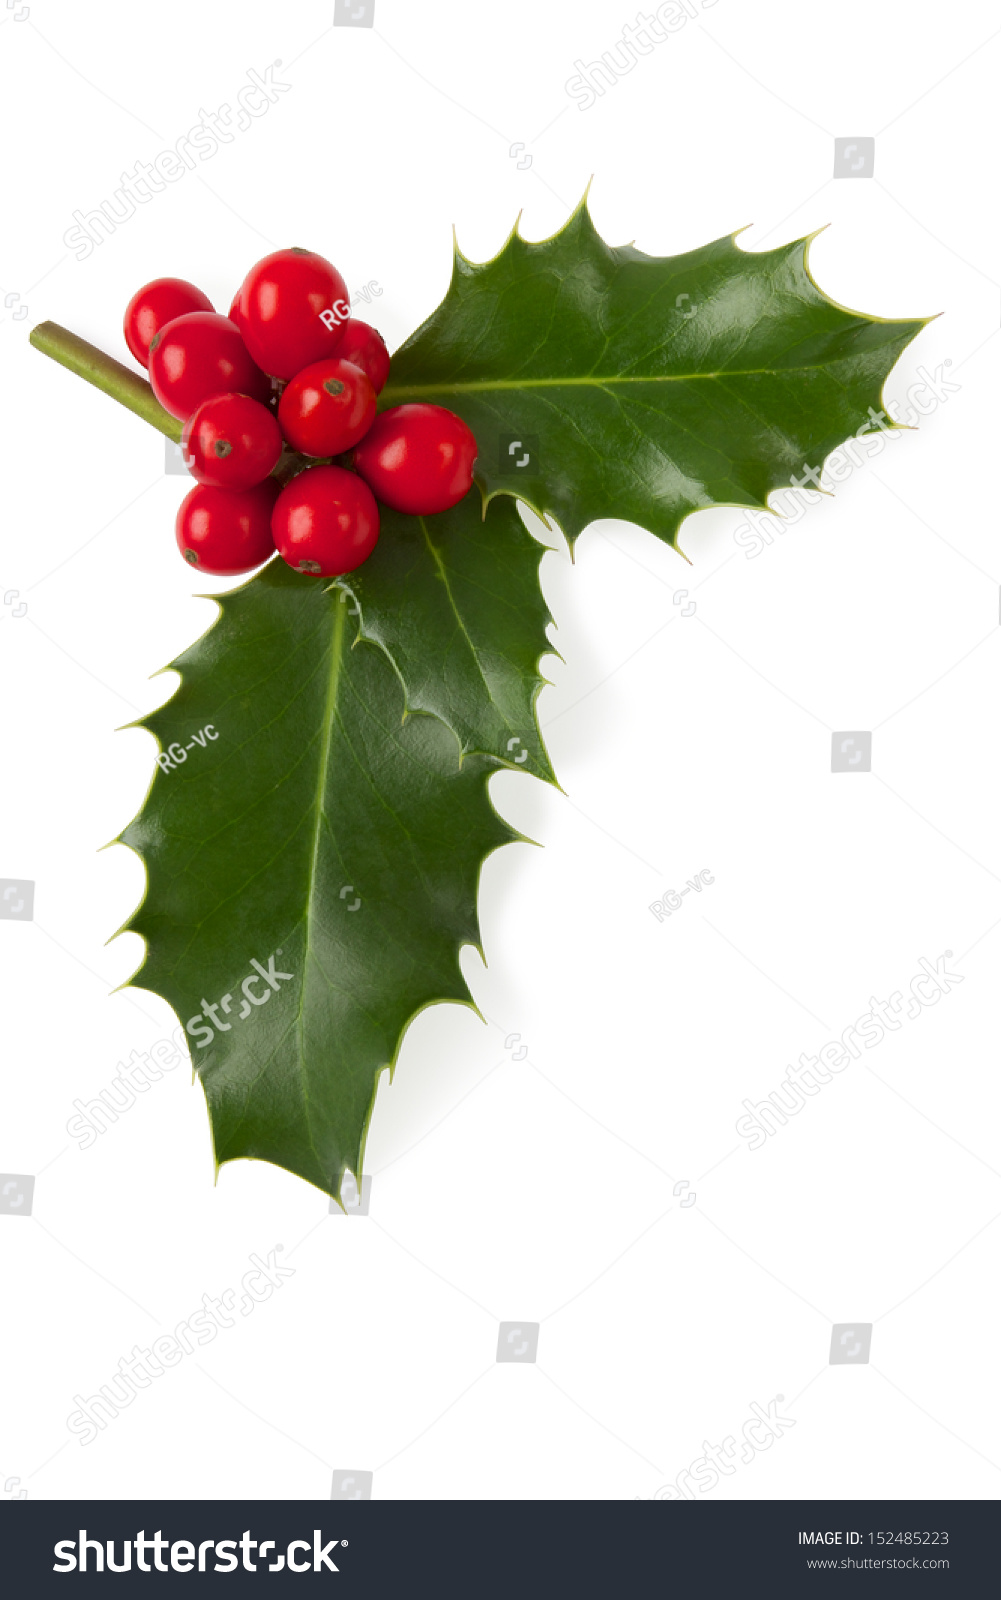 Holly Christmas Decoration Clipping Path Included Stock